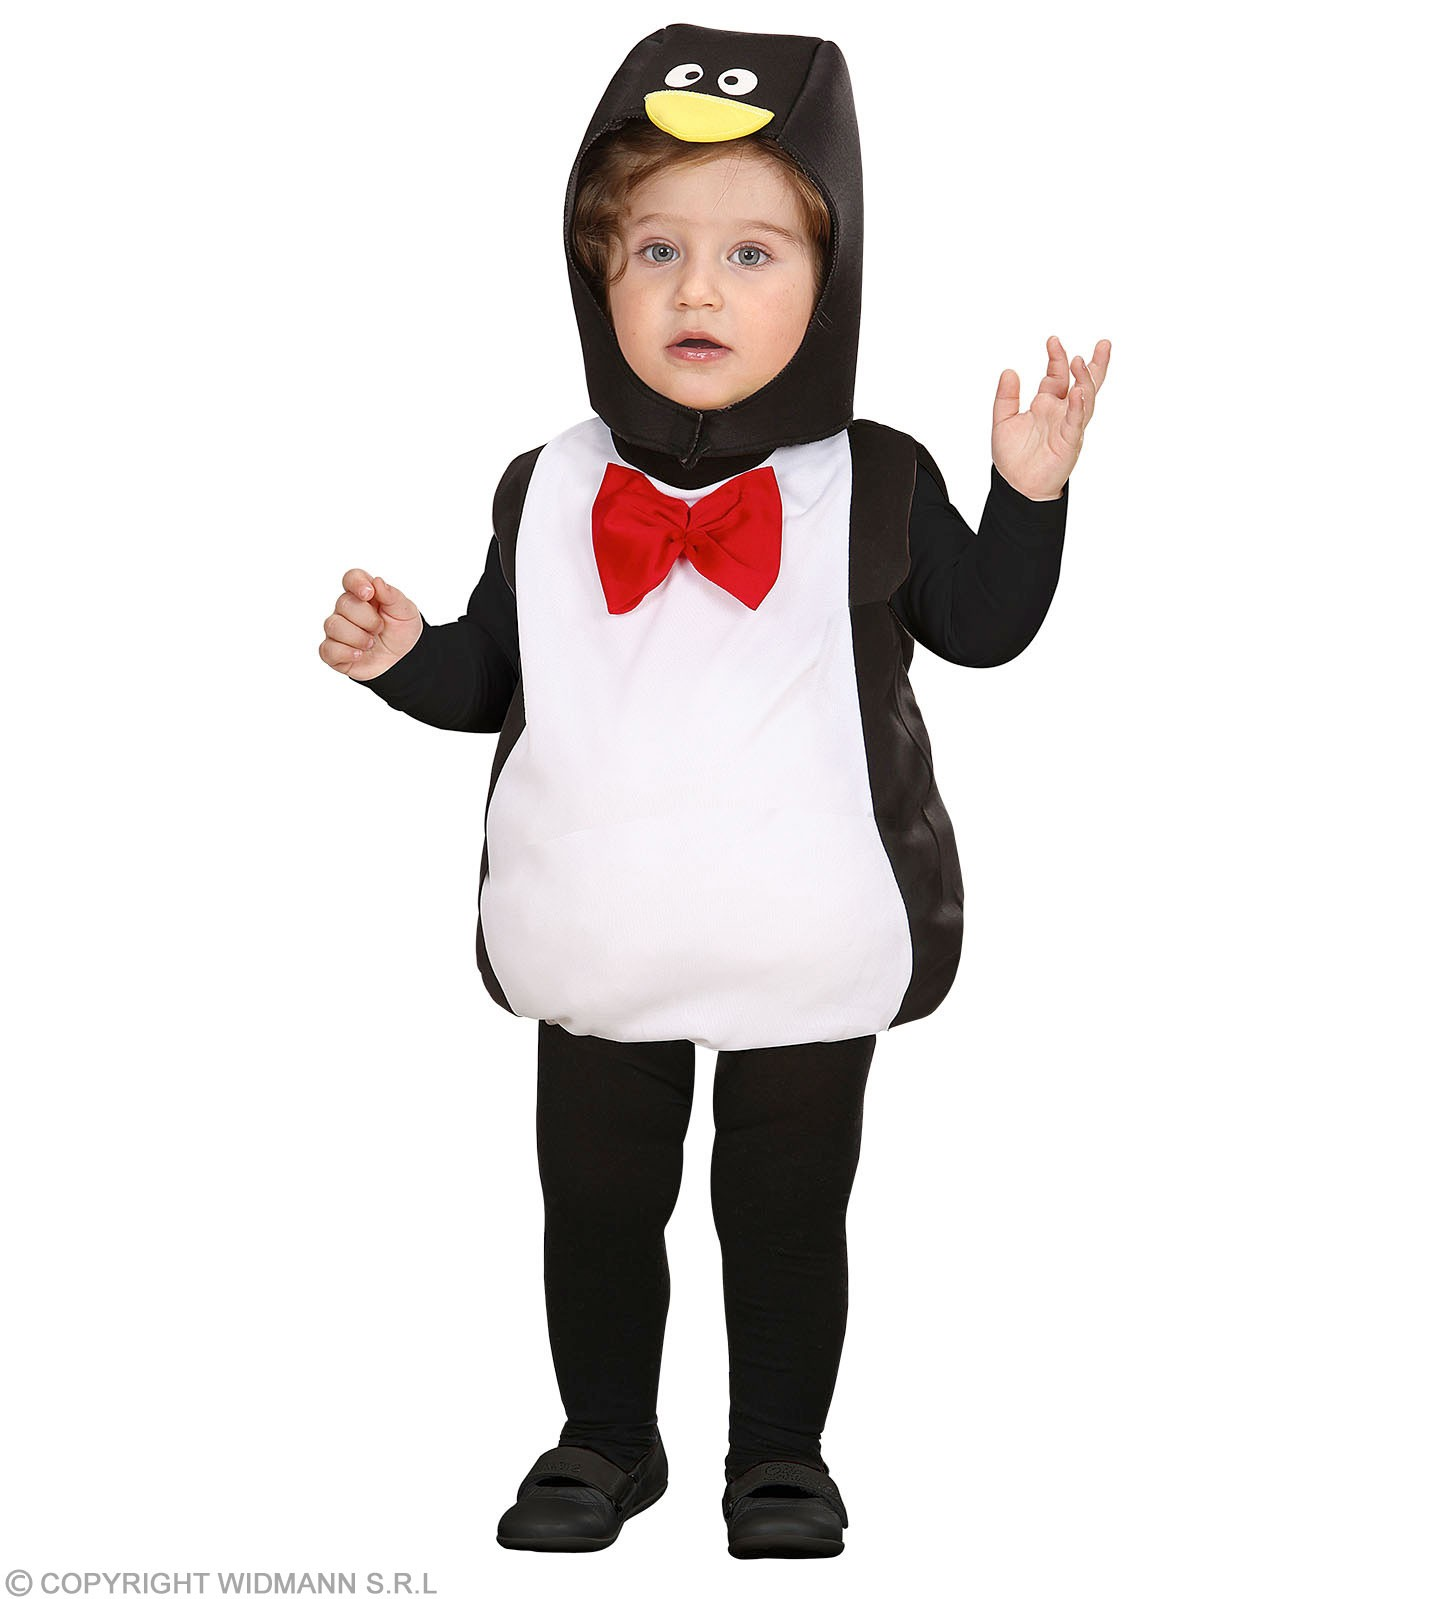 Girls Penguin (104Cm) (Jumpsuit Headpiece) Animal Outfit - Age 2-3 (Black)